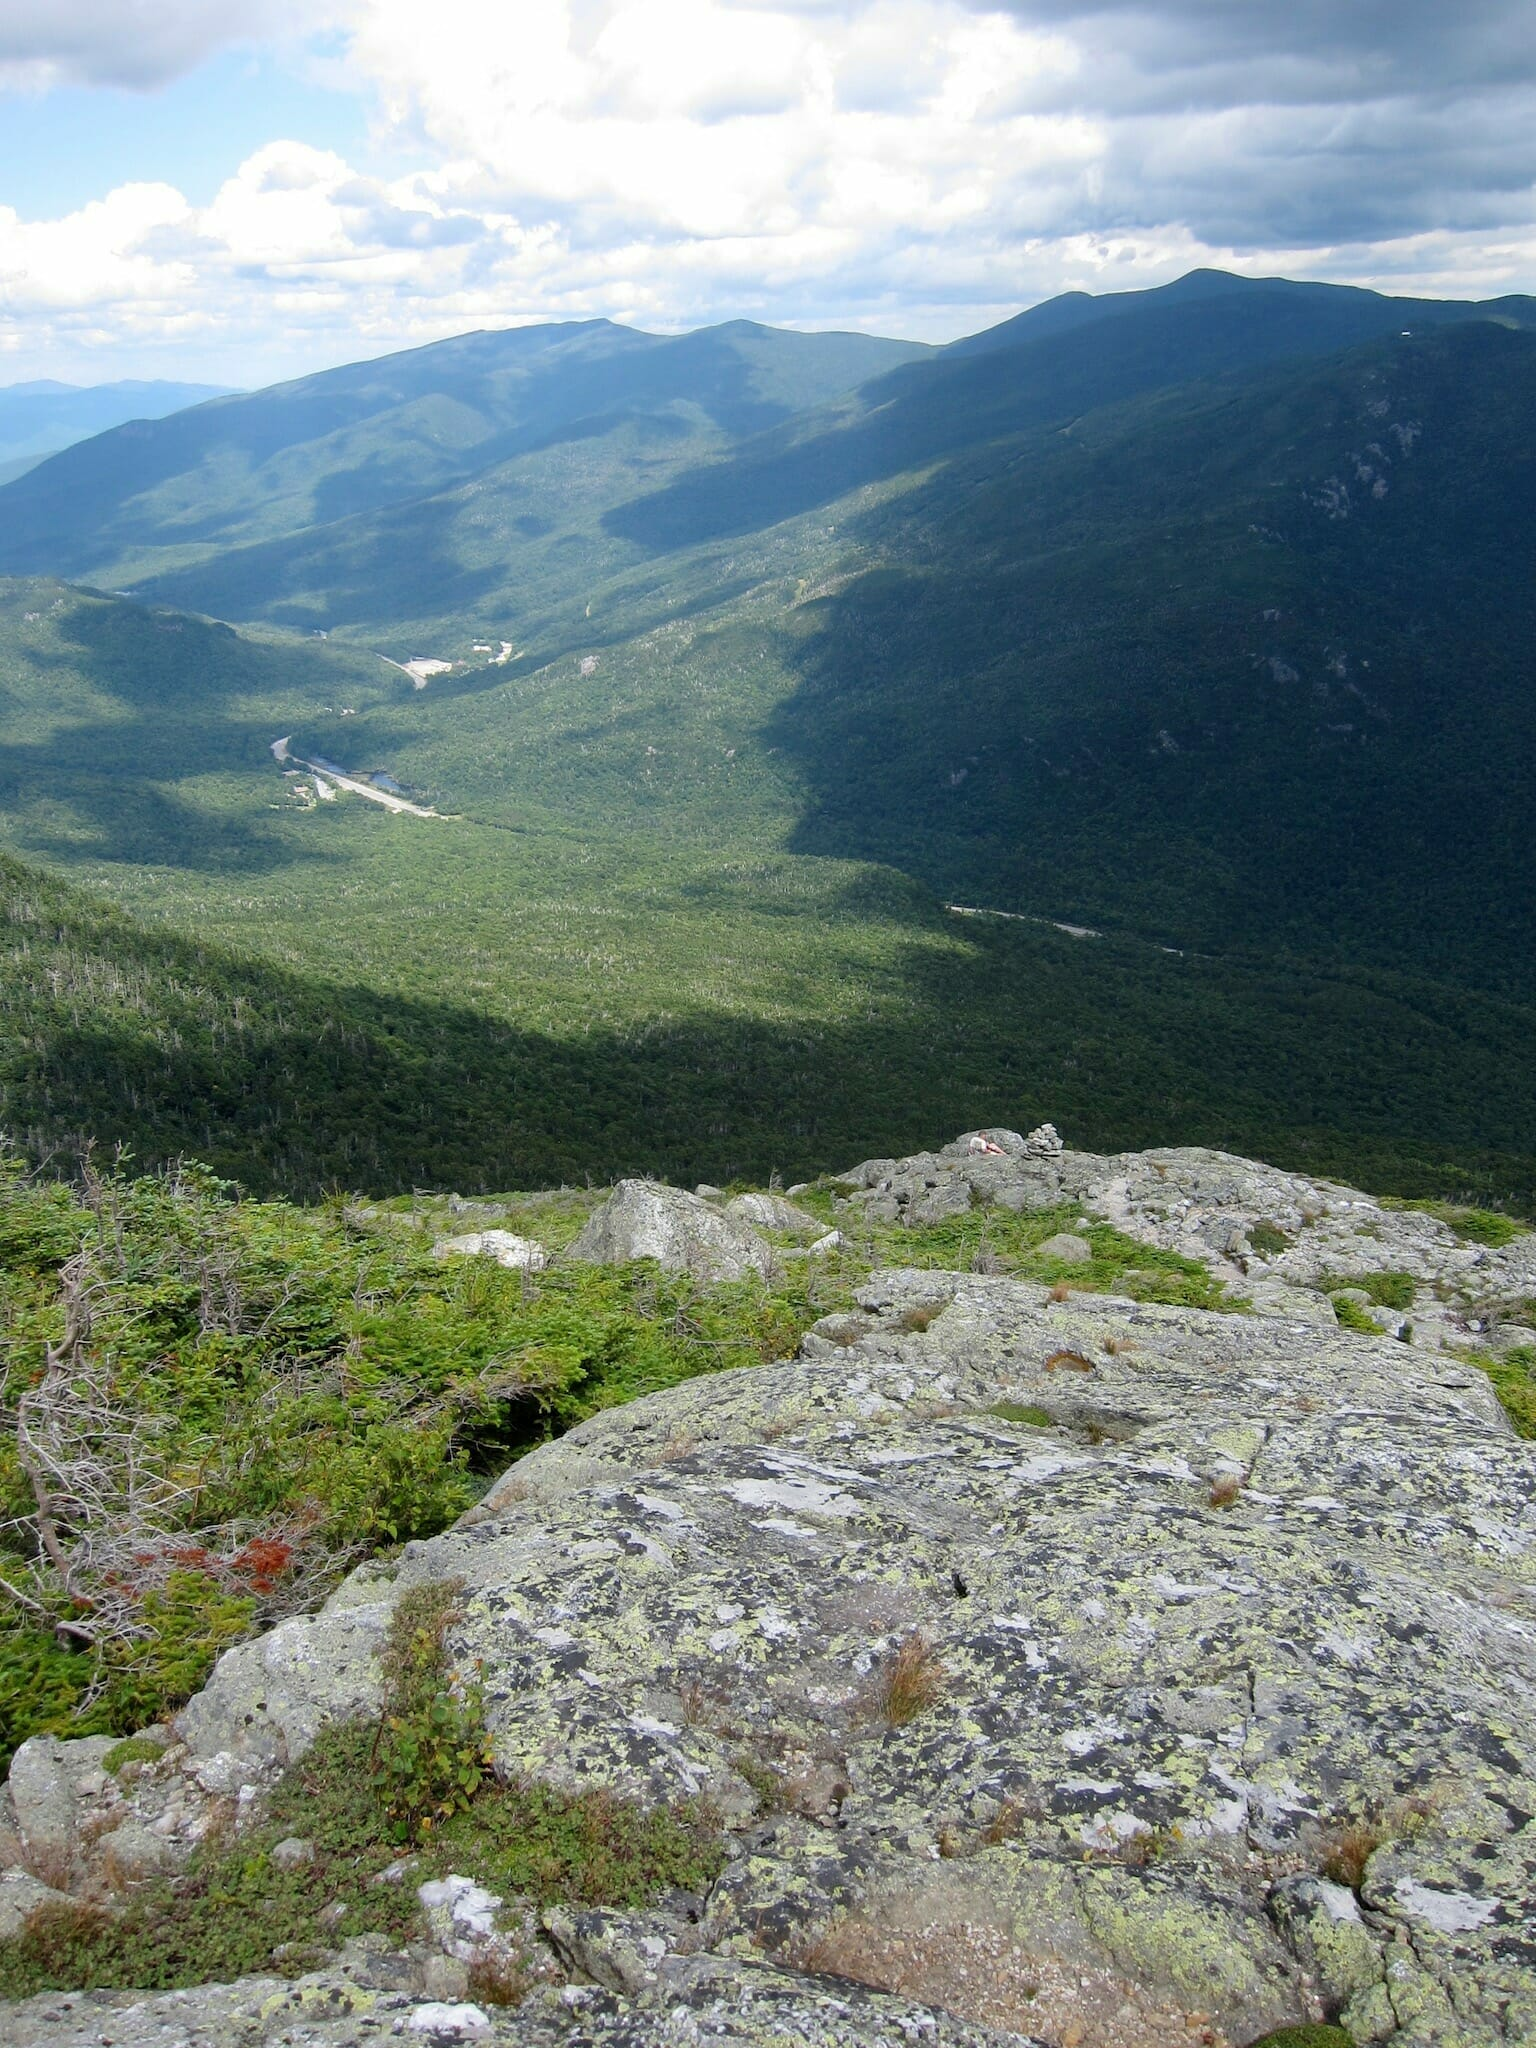 Pinkham Notch from the Boott Spur Trail, with Wildcat Ridge and the Carters in the background